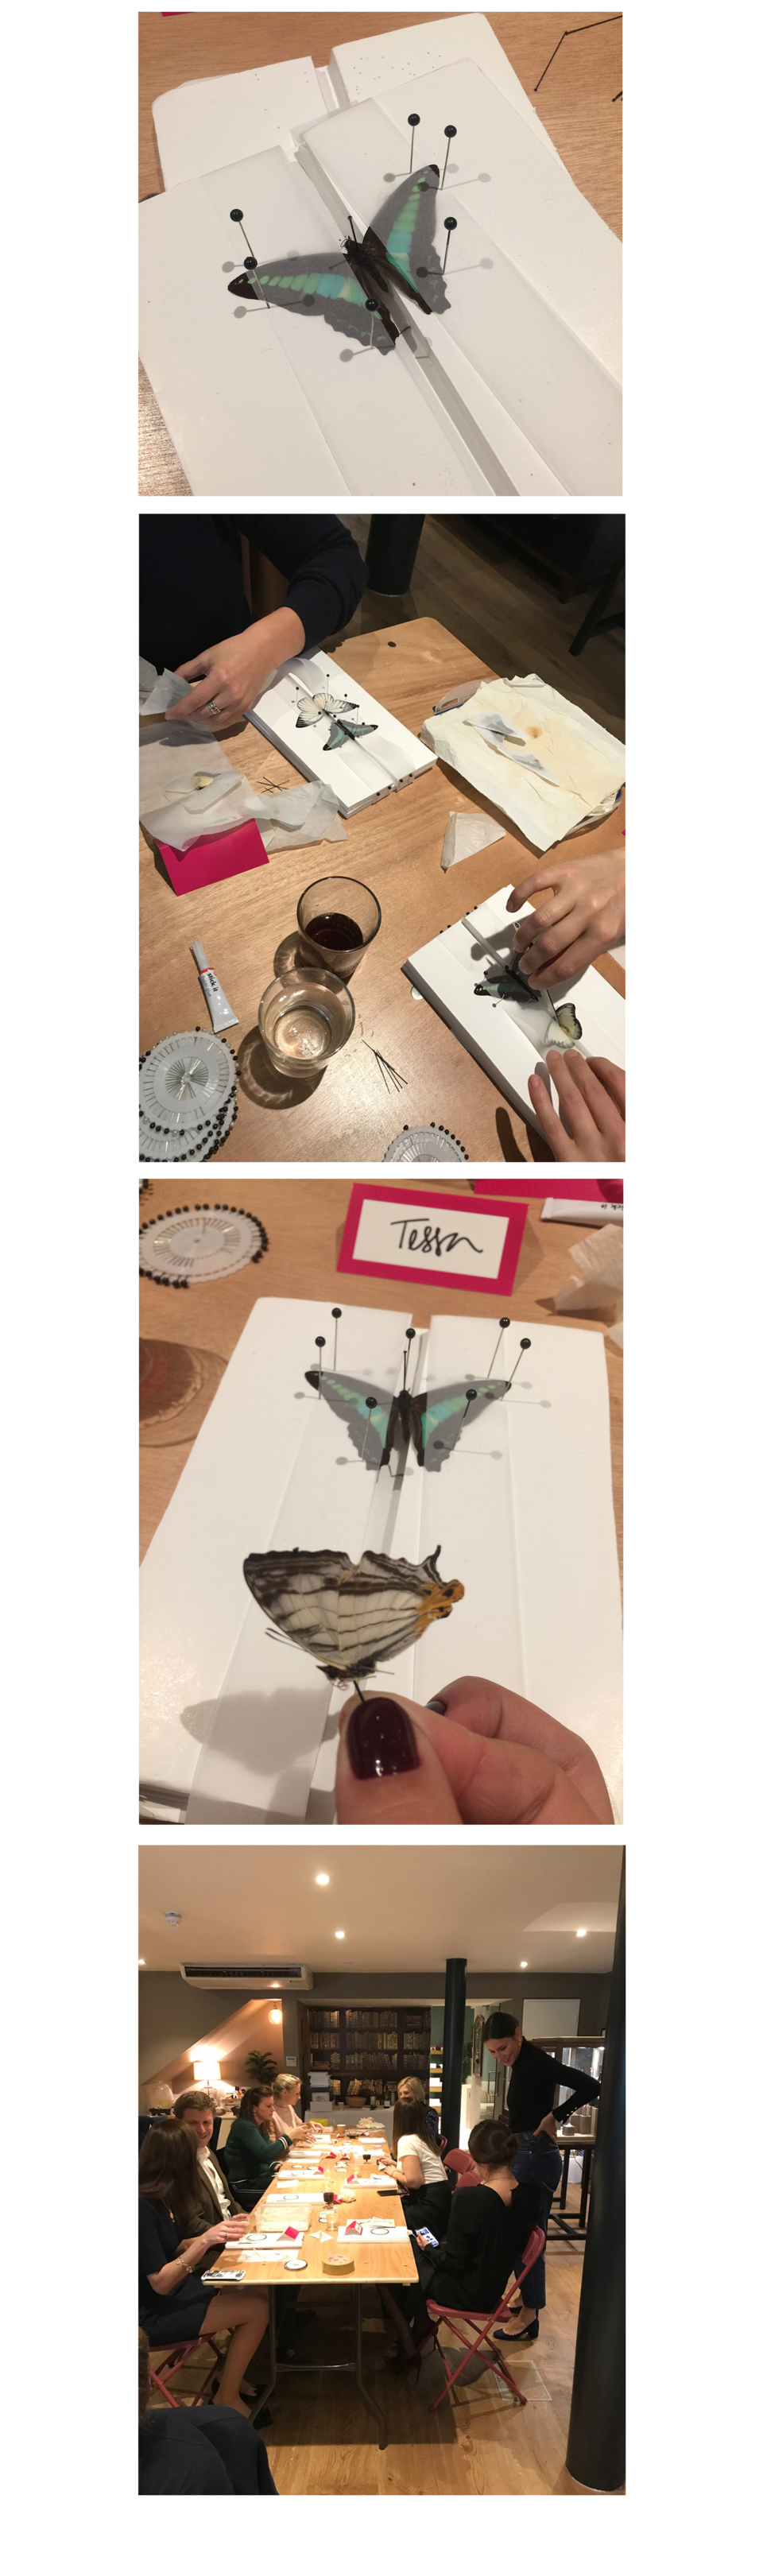 Butterfly Decoupage workshop at Tessa Packard London Contemporary Fine Jewellery Showroom Kensington